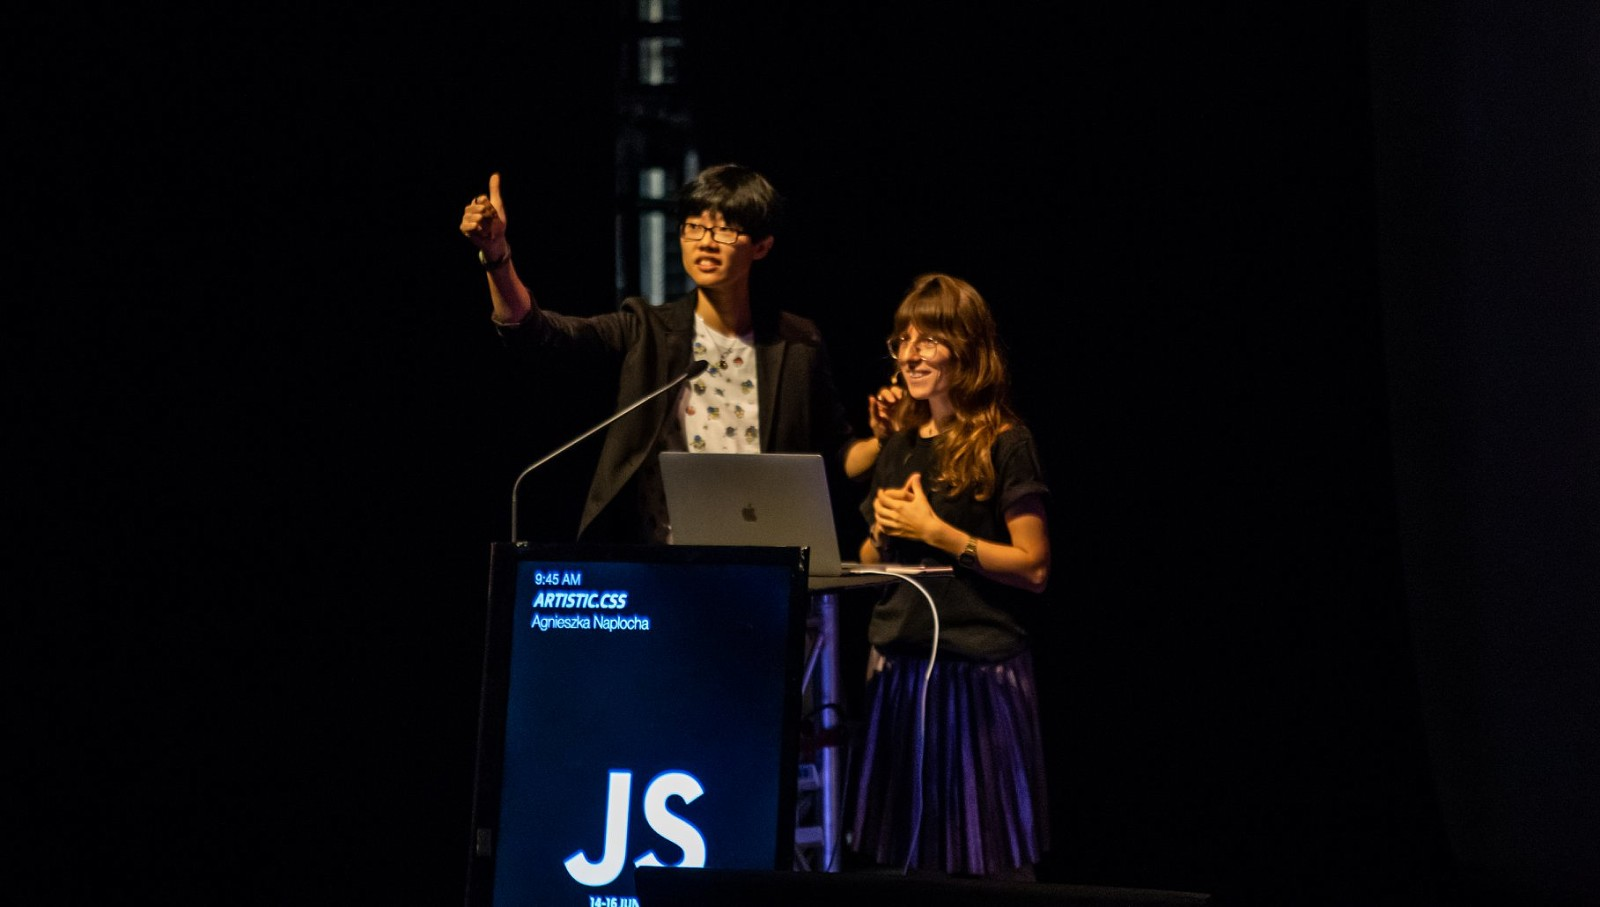 MC for Day 1 of JSConf.Asia 2019